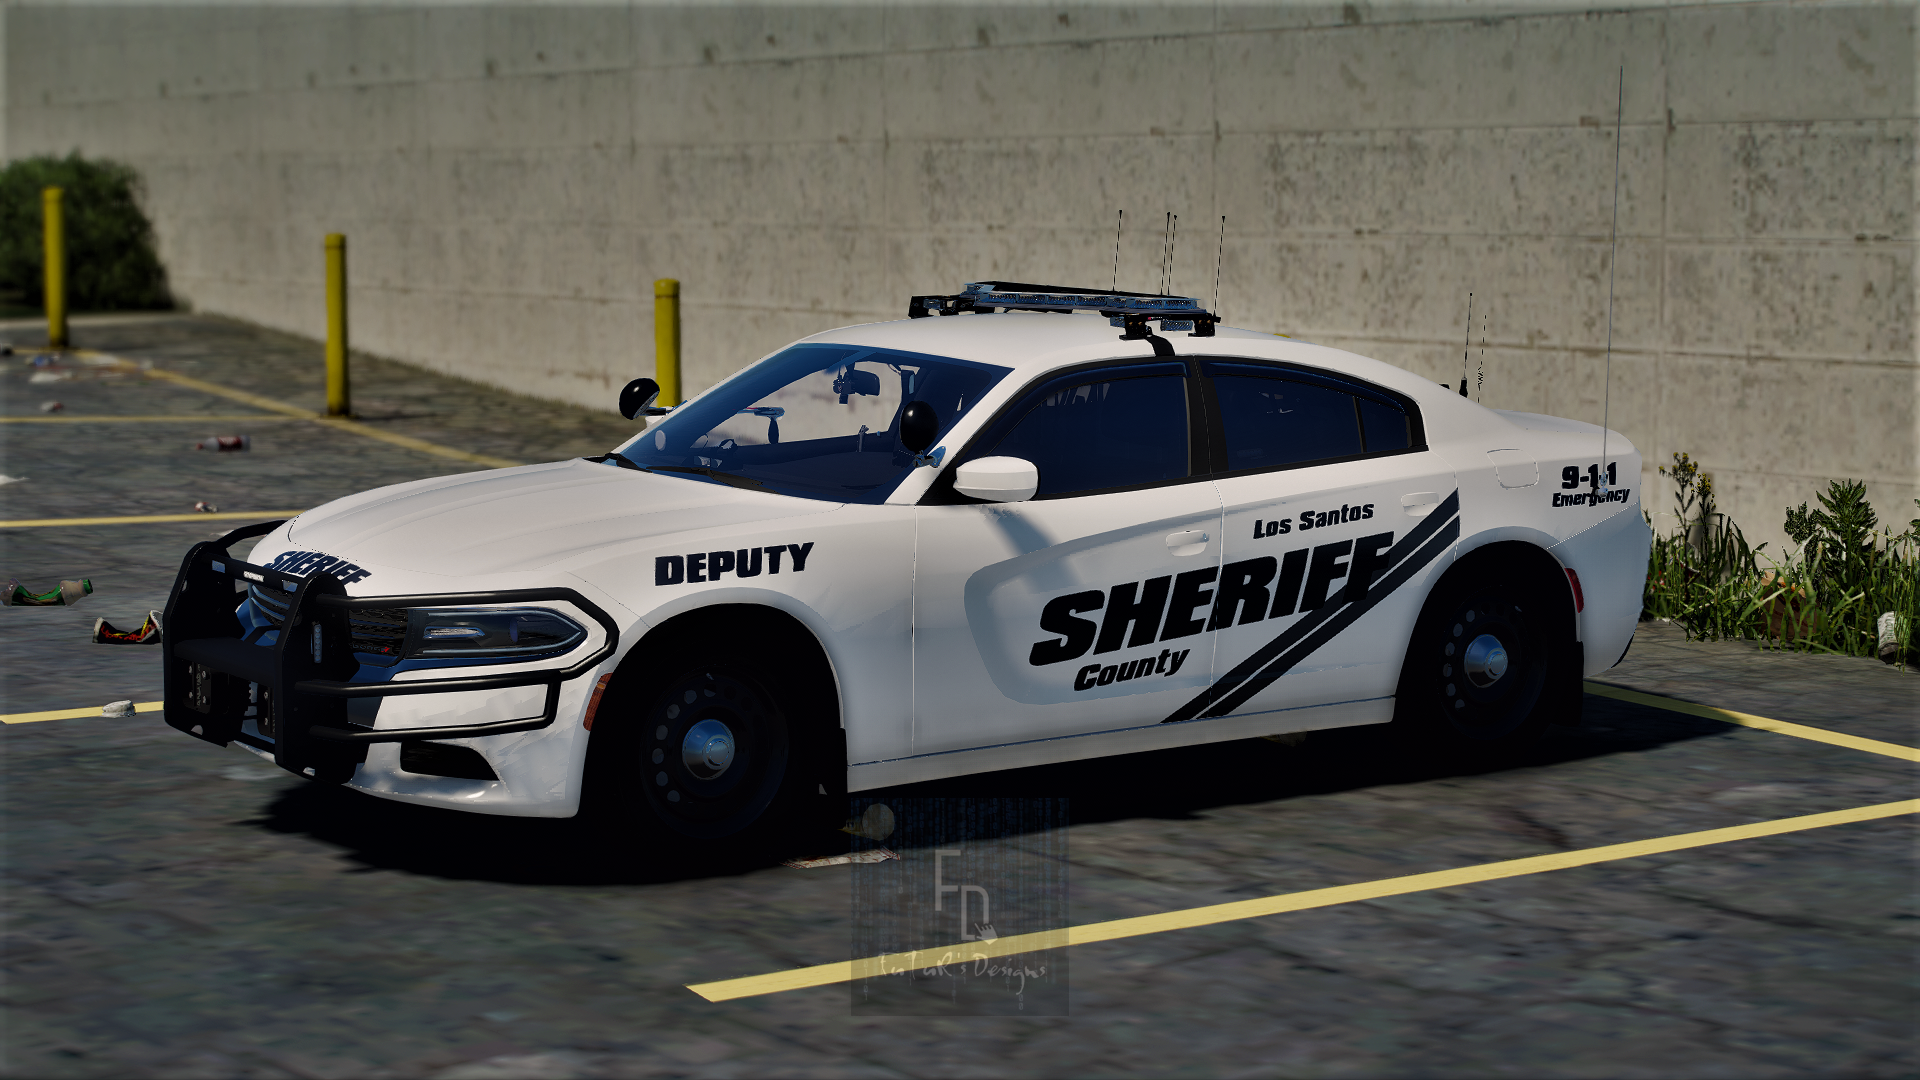 Grand_Theft_Auto_V_10_09_2021_16_43_15.png